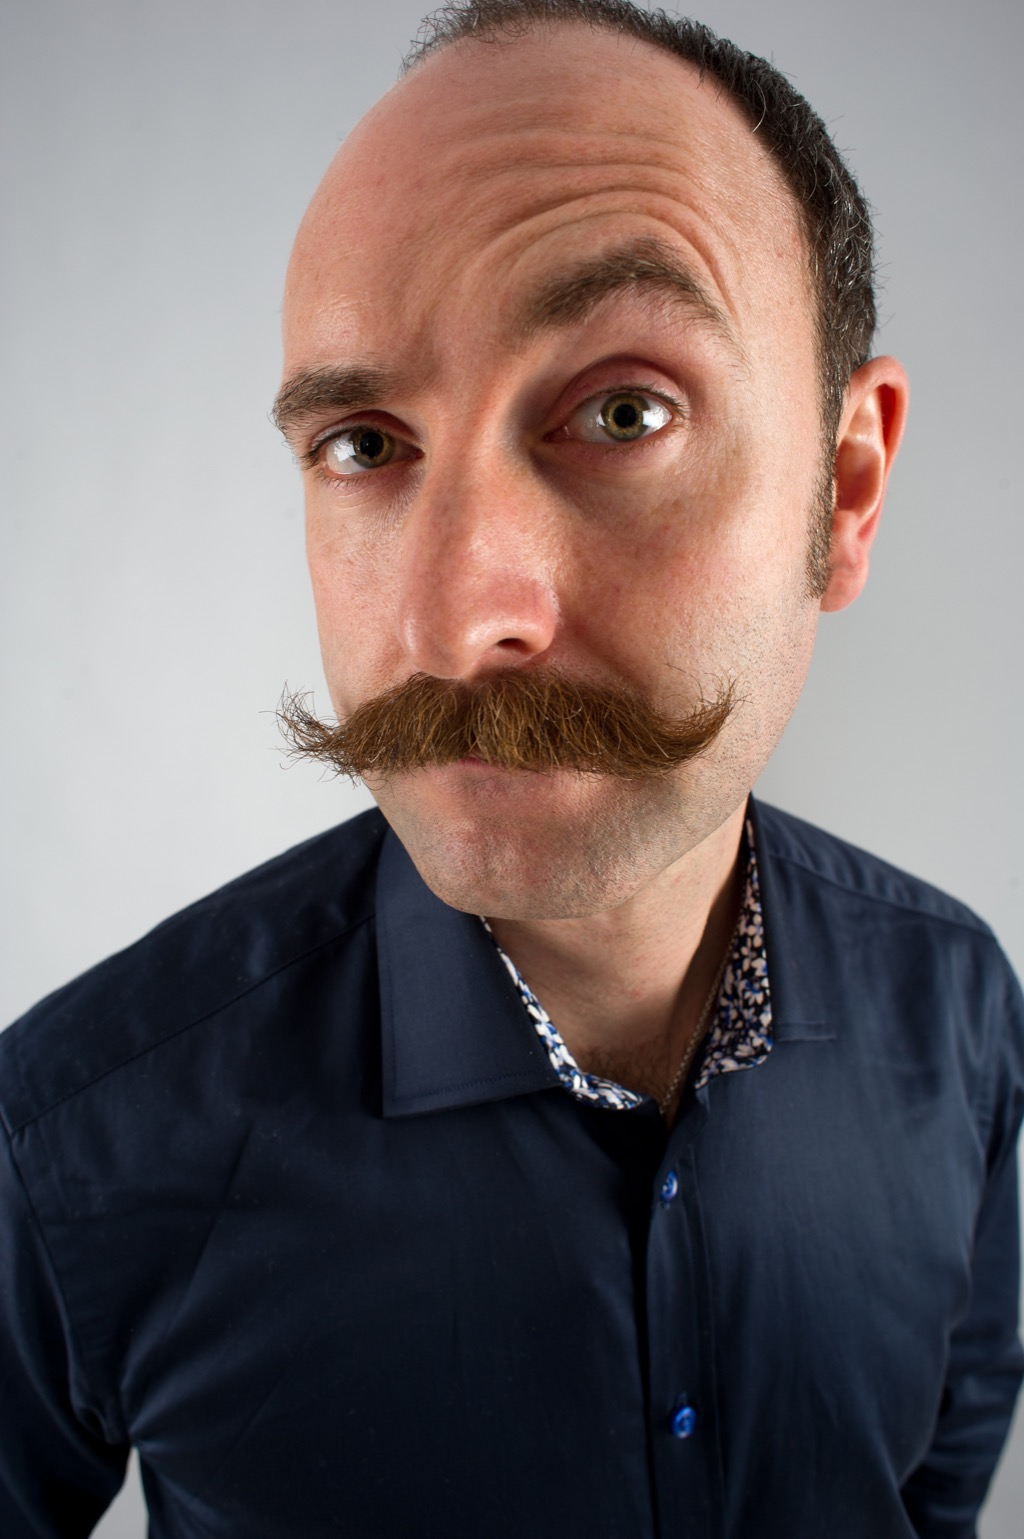 no man should have ironic mustache at work